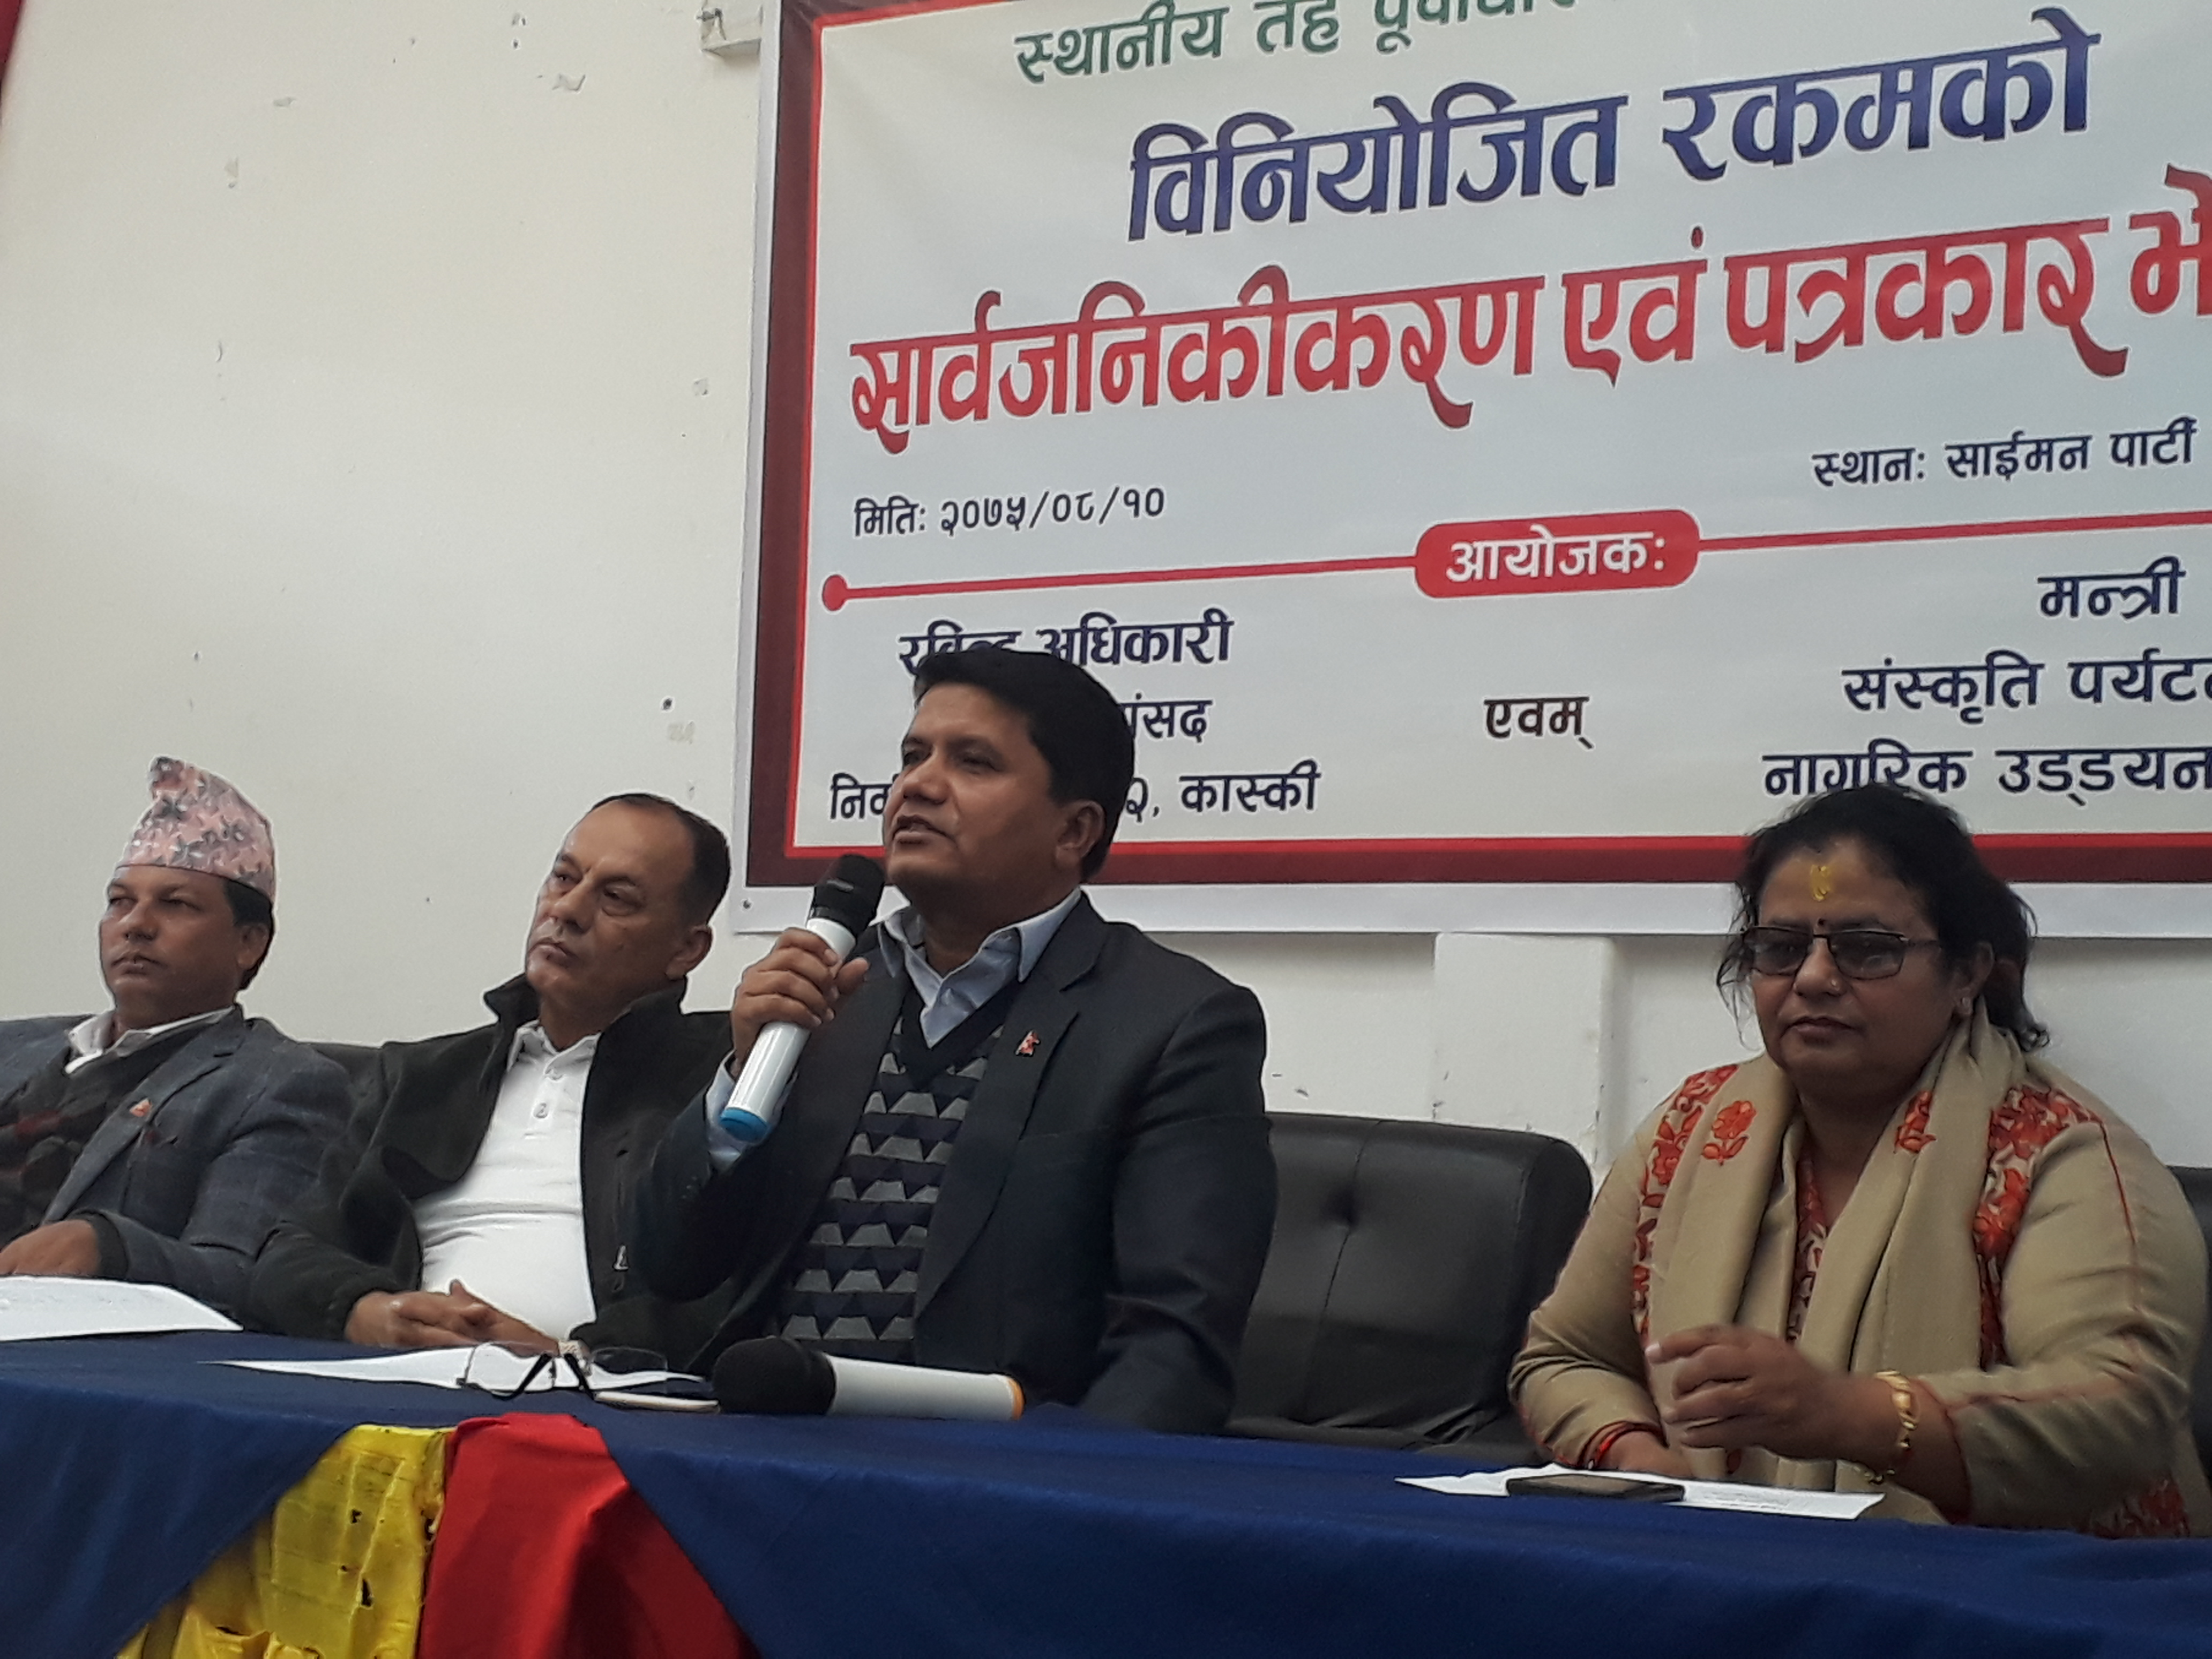 Minister Rabindra Adhikari speaks at a budget unveiling programme in Pokhara electoral constituency 2 on Monday, November 26, 2018. Photo: Rishi Baral/THT